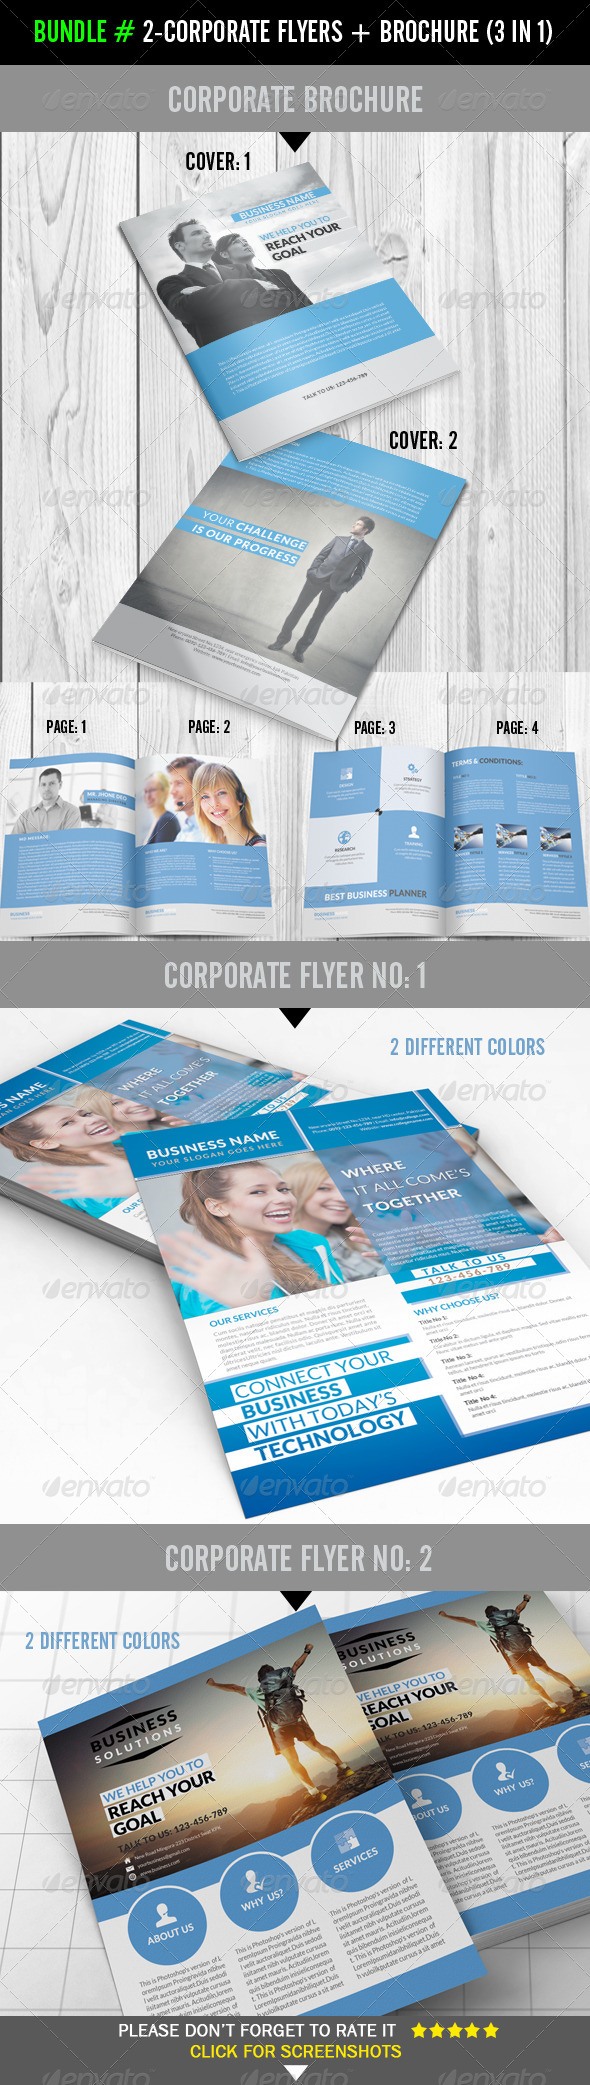 GraphicRiver Bundle # Corporate Flyers & Brochure 3 in 1 7784094